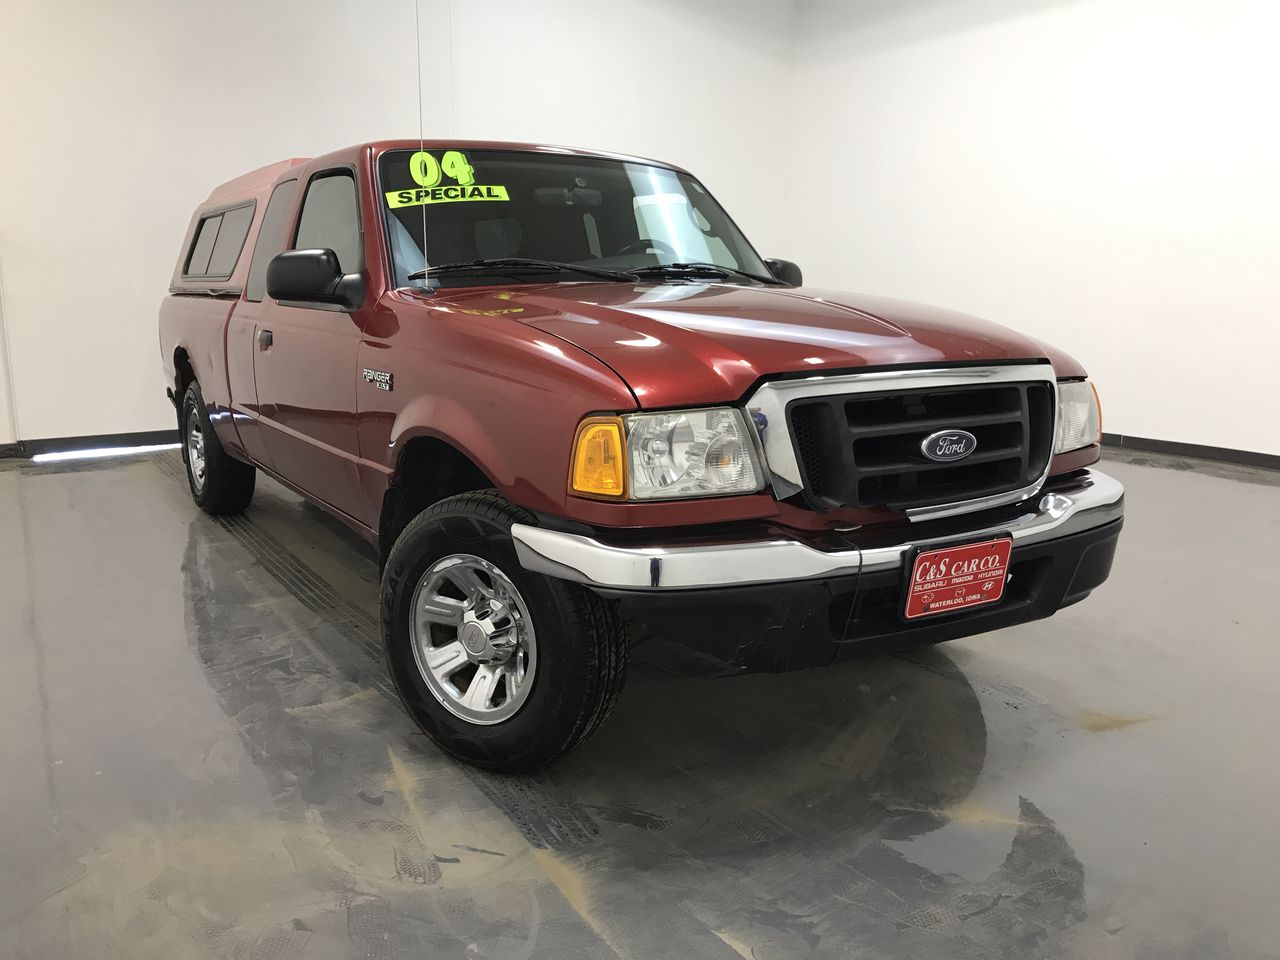 2004 Ford Ranger Super cab  - HY8277C  - C & S Car Company